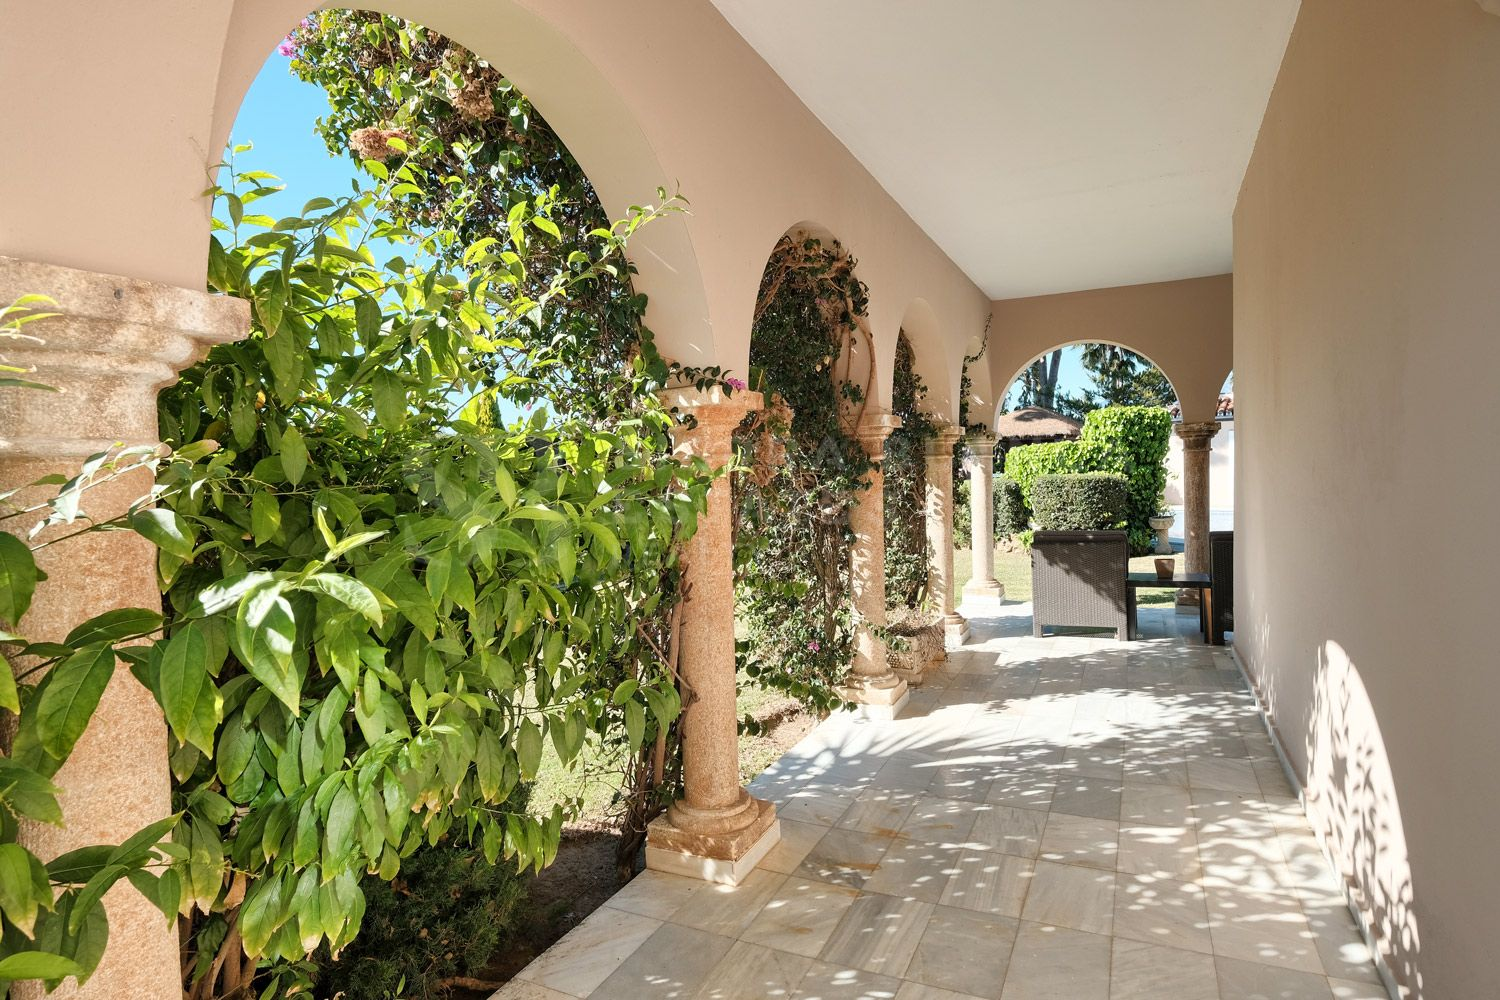 Exquisite and classic Roman Villa in ElViria